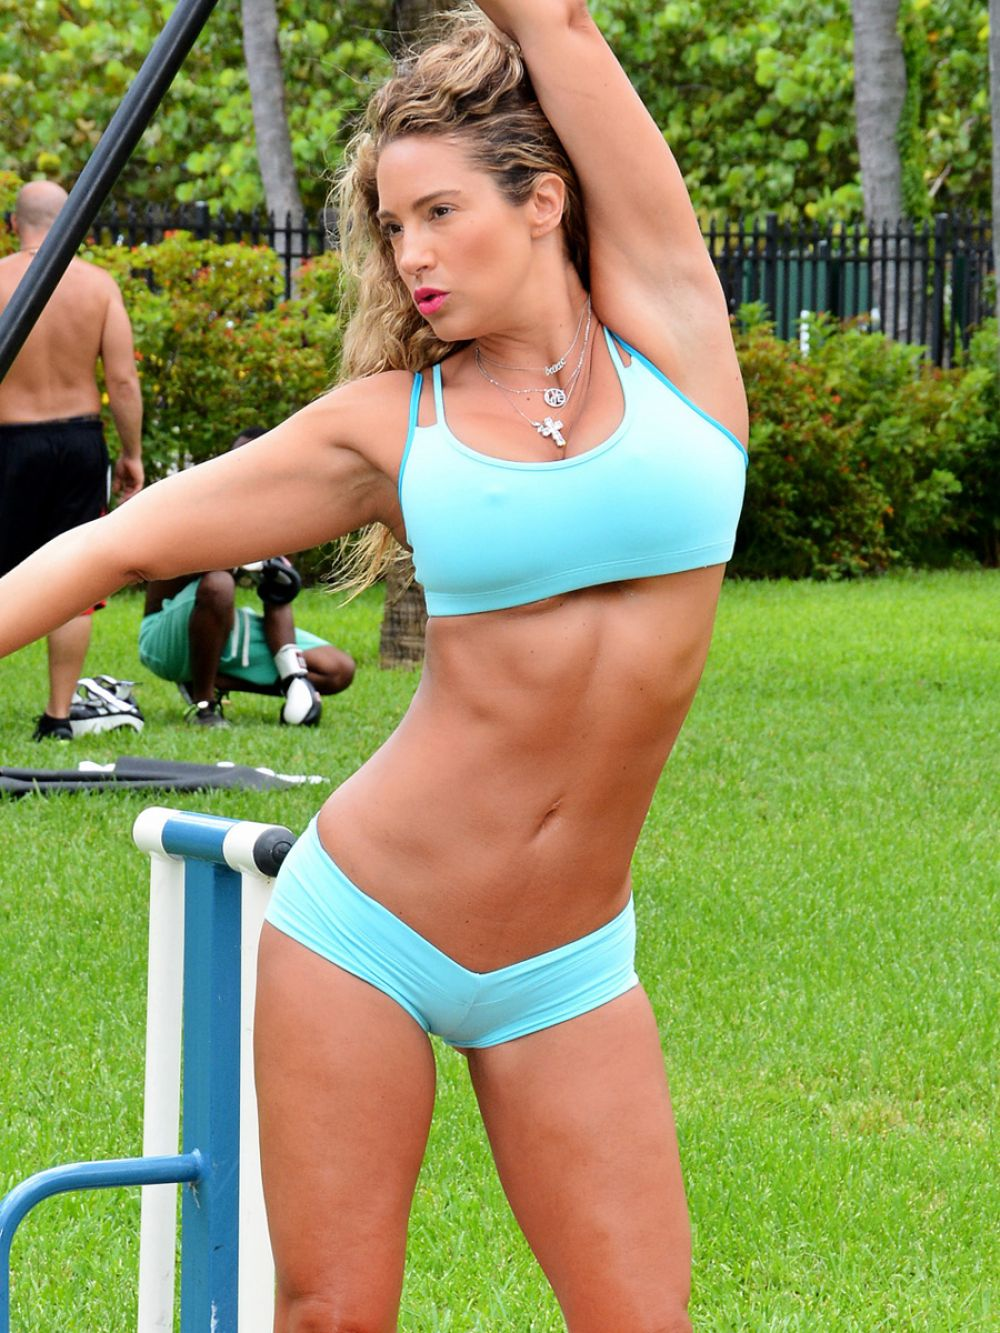 jennifer-nicole-lee-working-out-at-a-park-in-miami_9.jpg - 230.51 KB